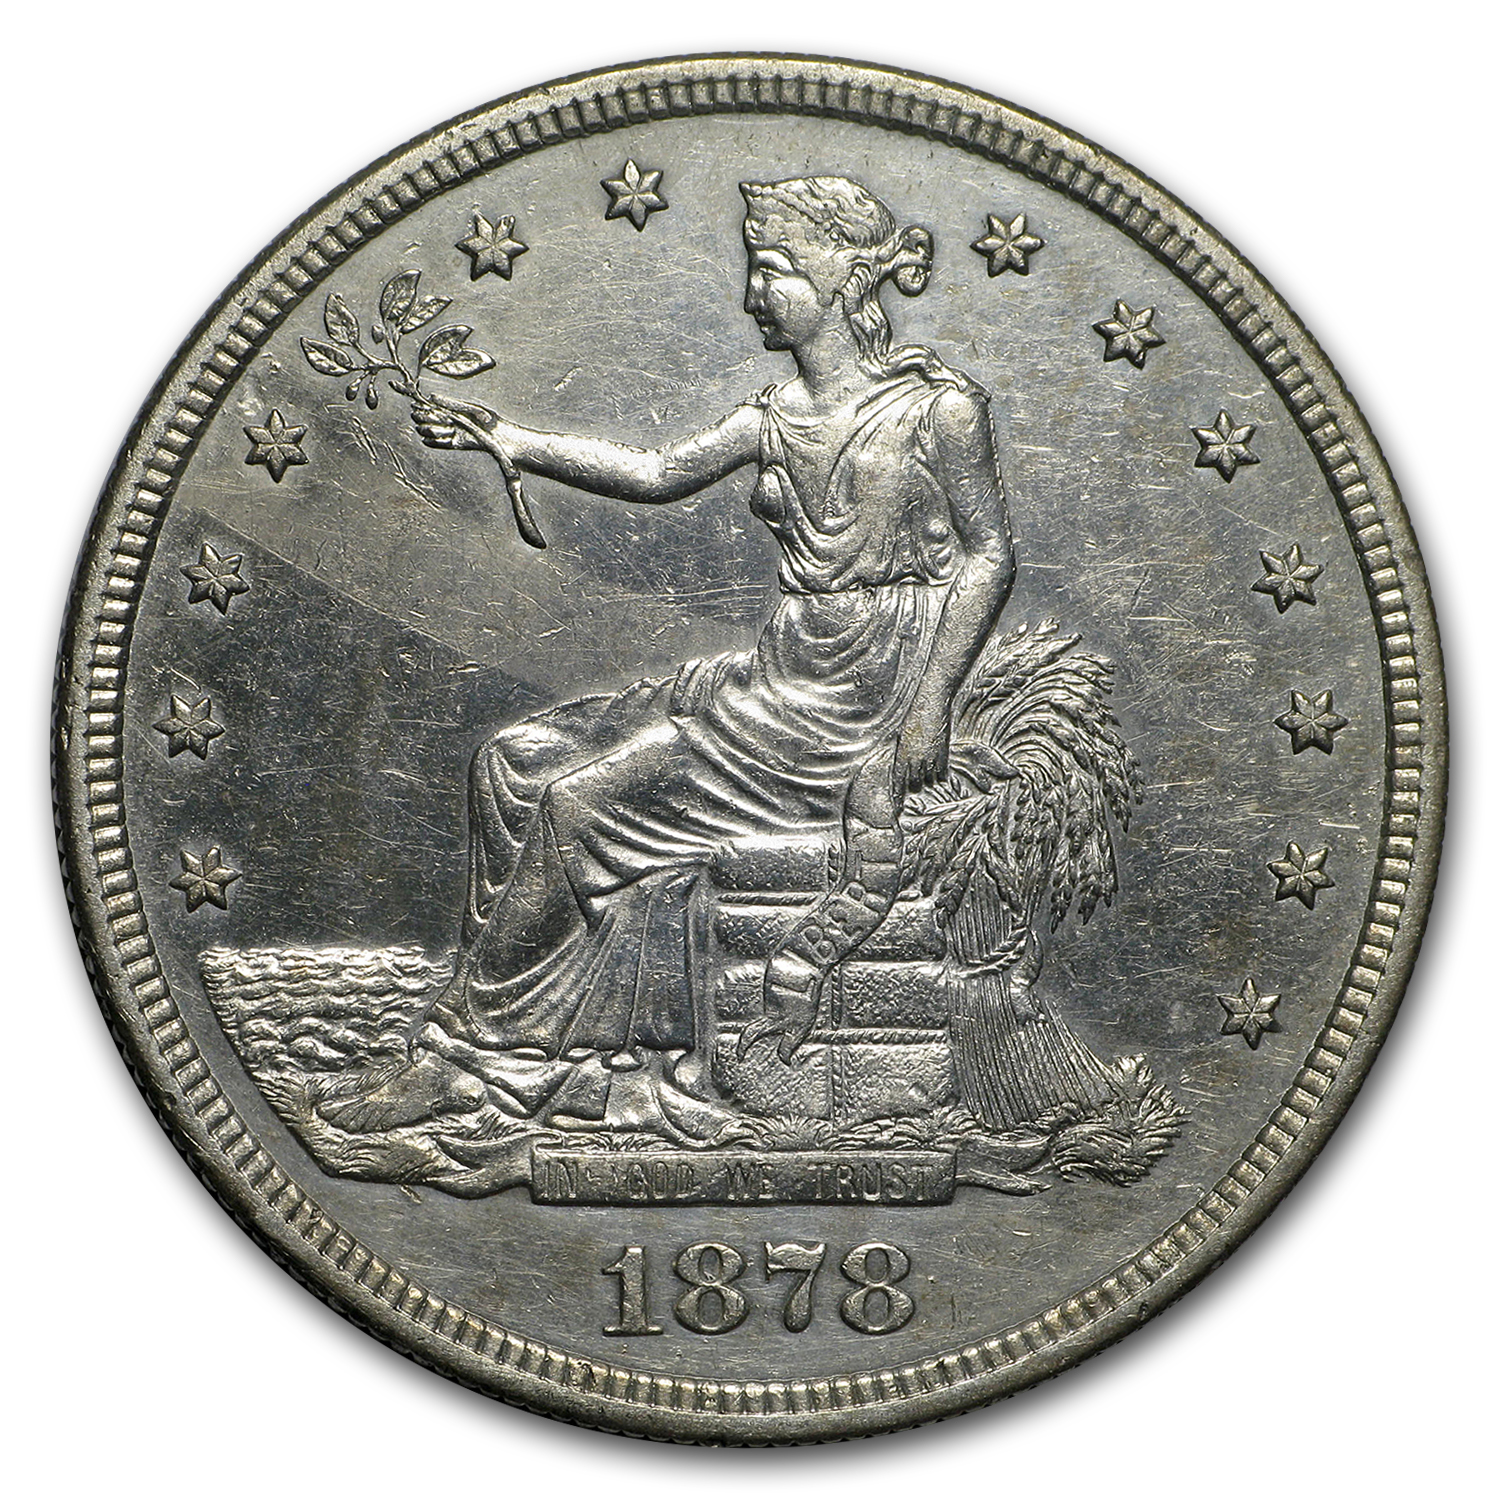 1878-S Trade Dollar AU Details (Cleaned)